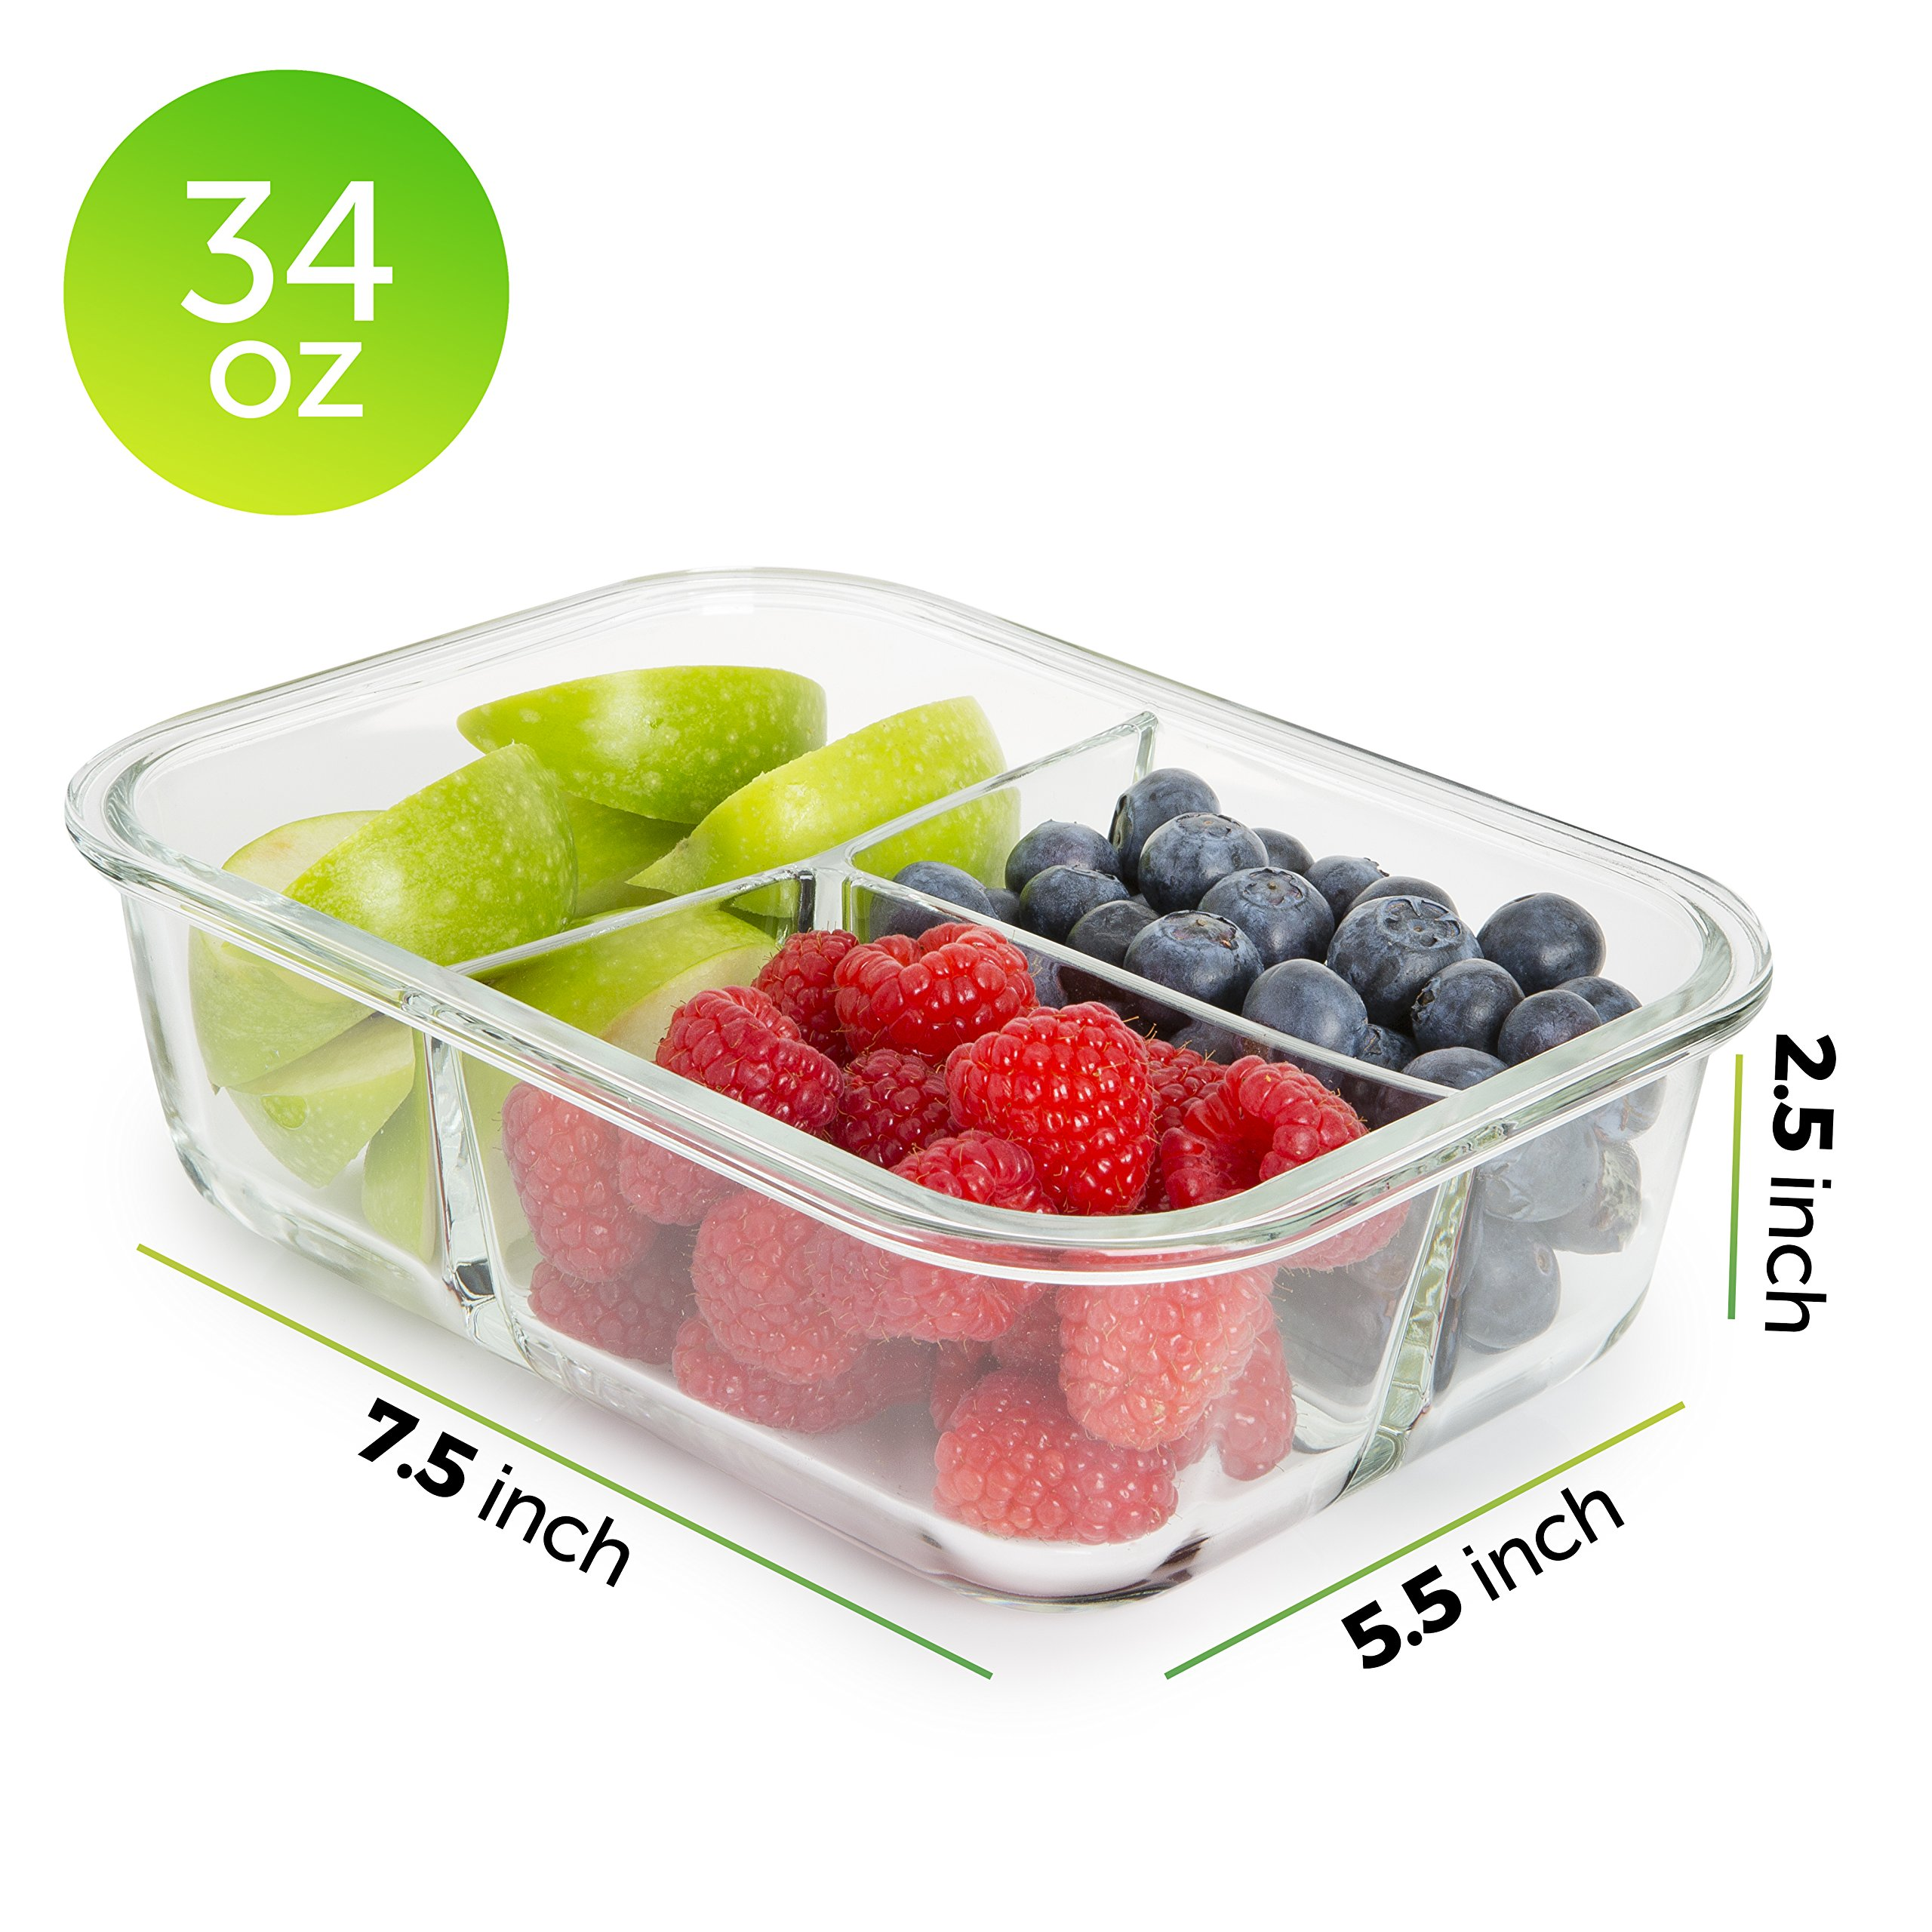 [5-Pack] Glass Meal Prep Containers 3 Compartment - Bento Box Containers Glass Food Storage Containers with Lids - Food Prep Containers Glass Storage Containers with lids Lunch Containers by Prep Naturals (Image #6)